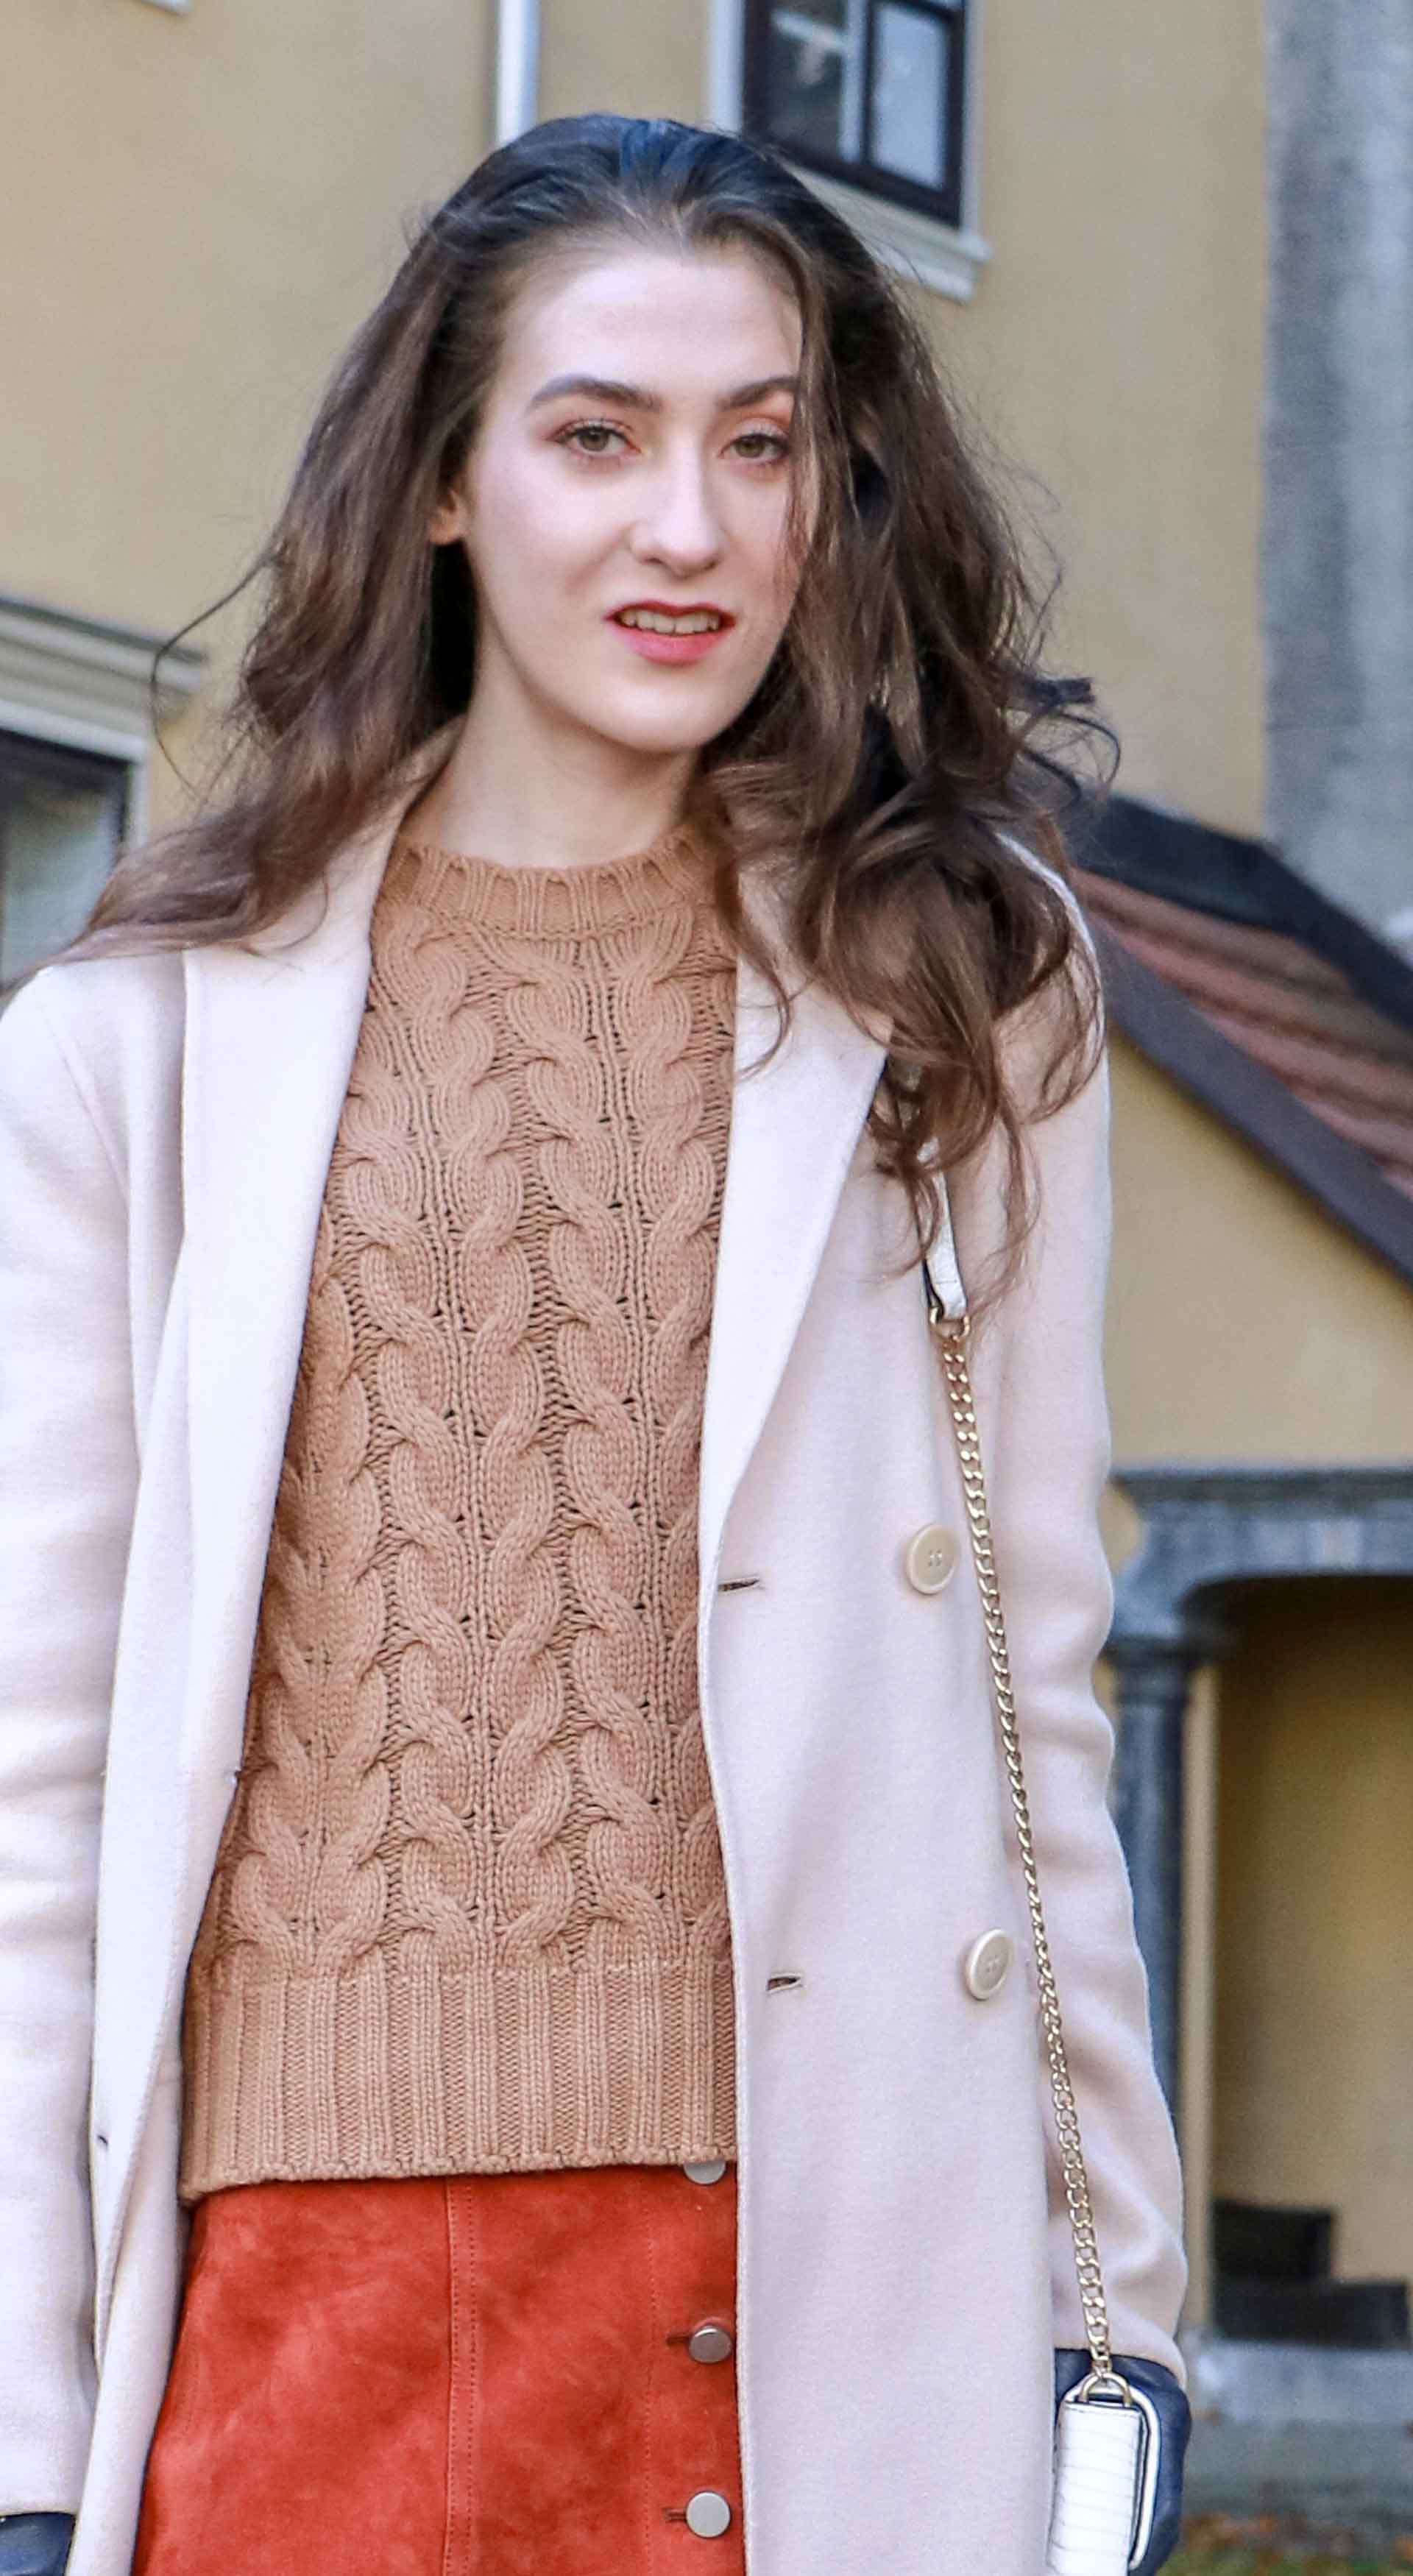 Beautiful Slovenian Fashion Blogger Veronika Lipar of Brunette from Wall wearing Max Mara camel cable knit sweater, front button brown suede skirt